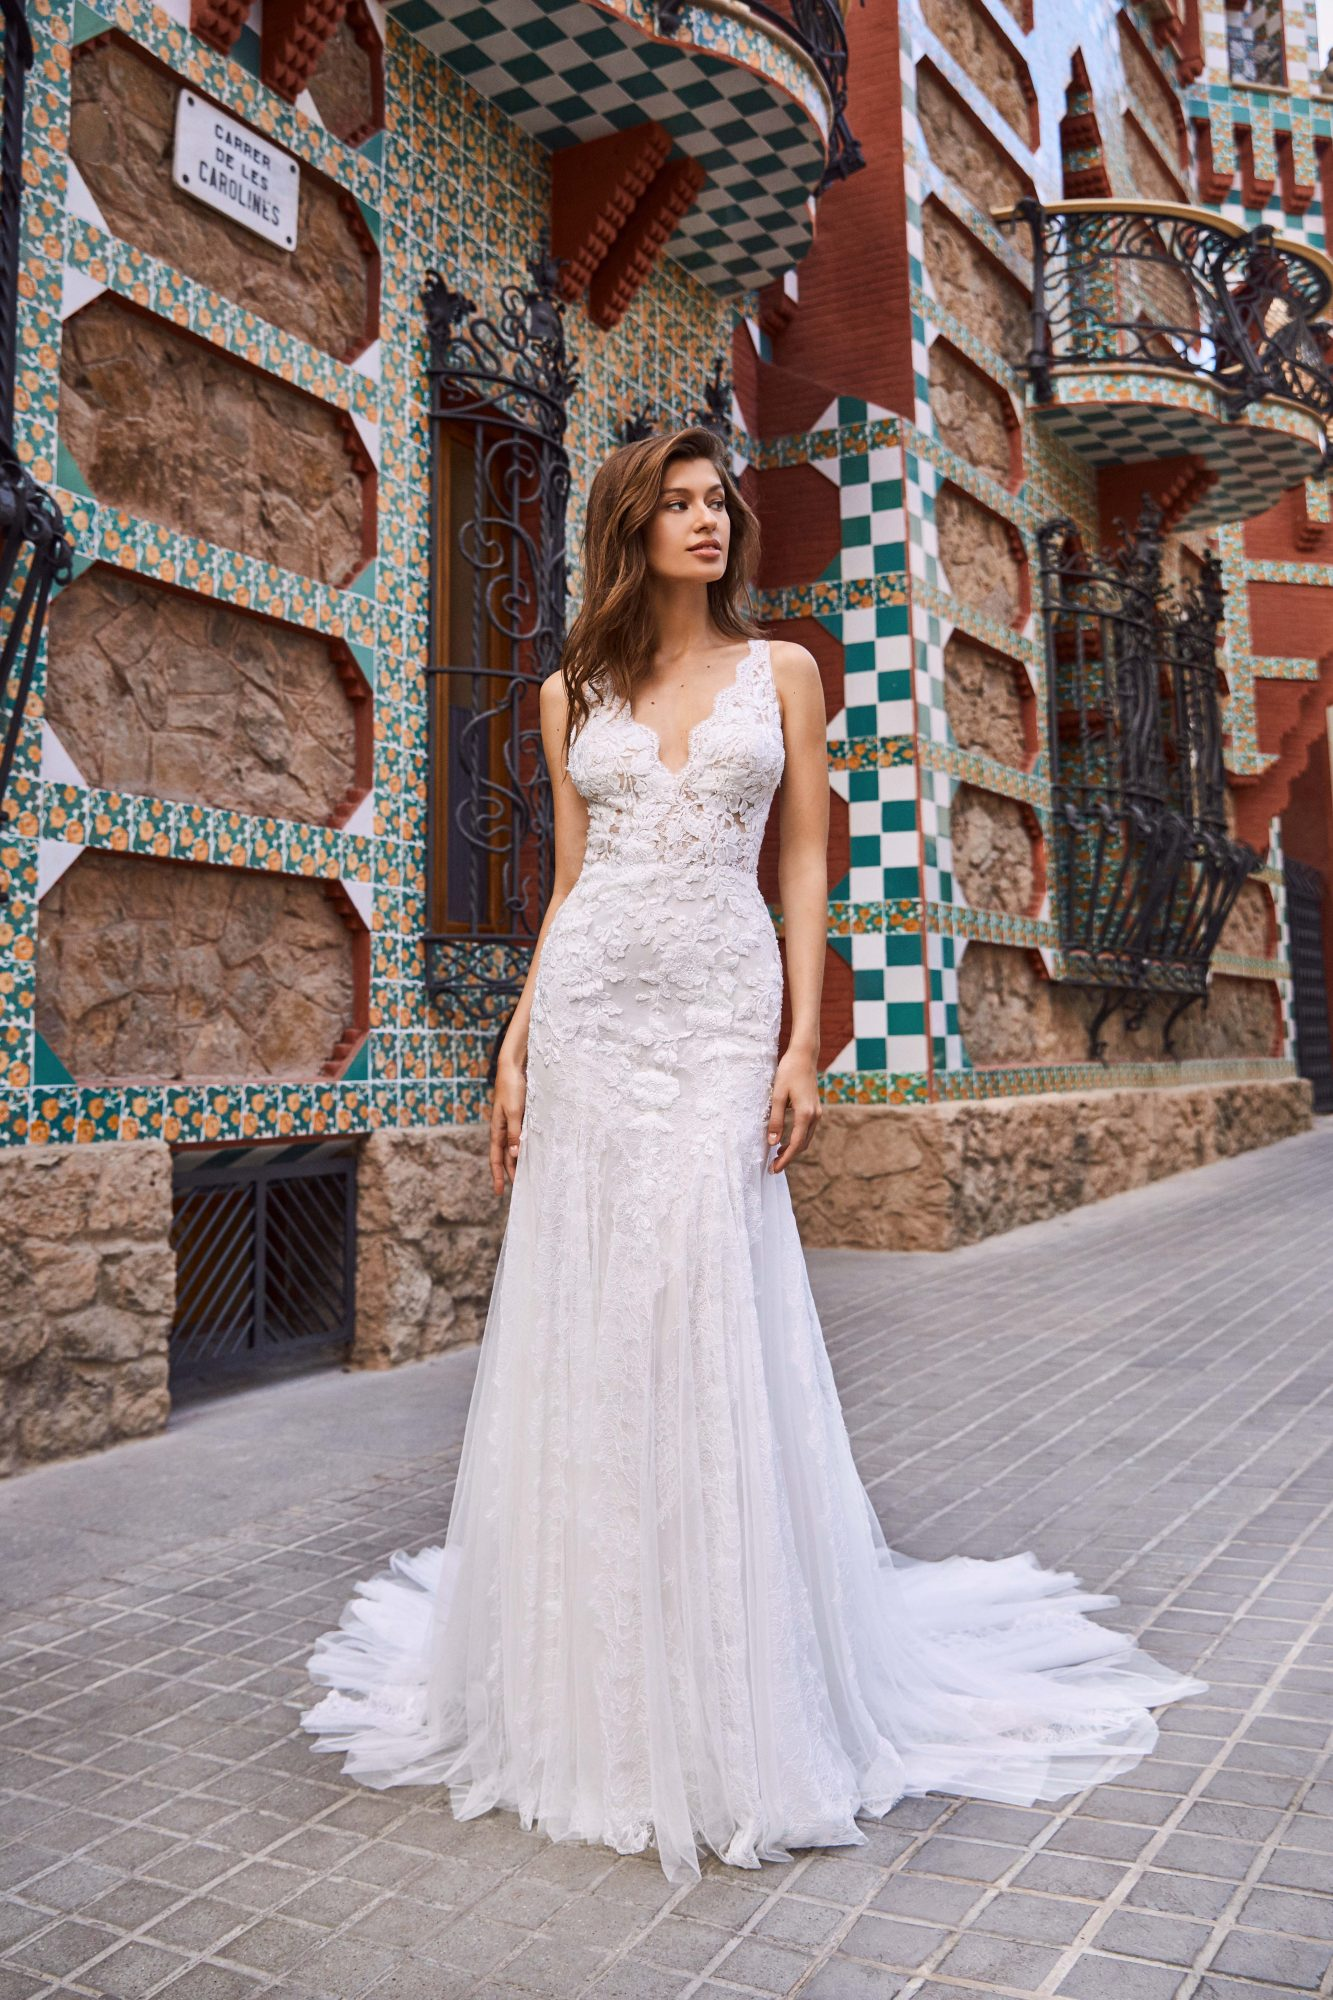 pronovias kleinfeld wedding dress fall 2019 06